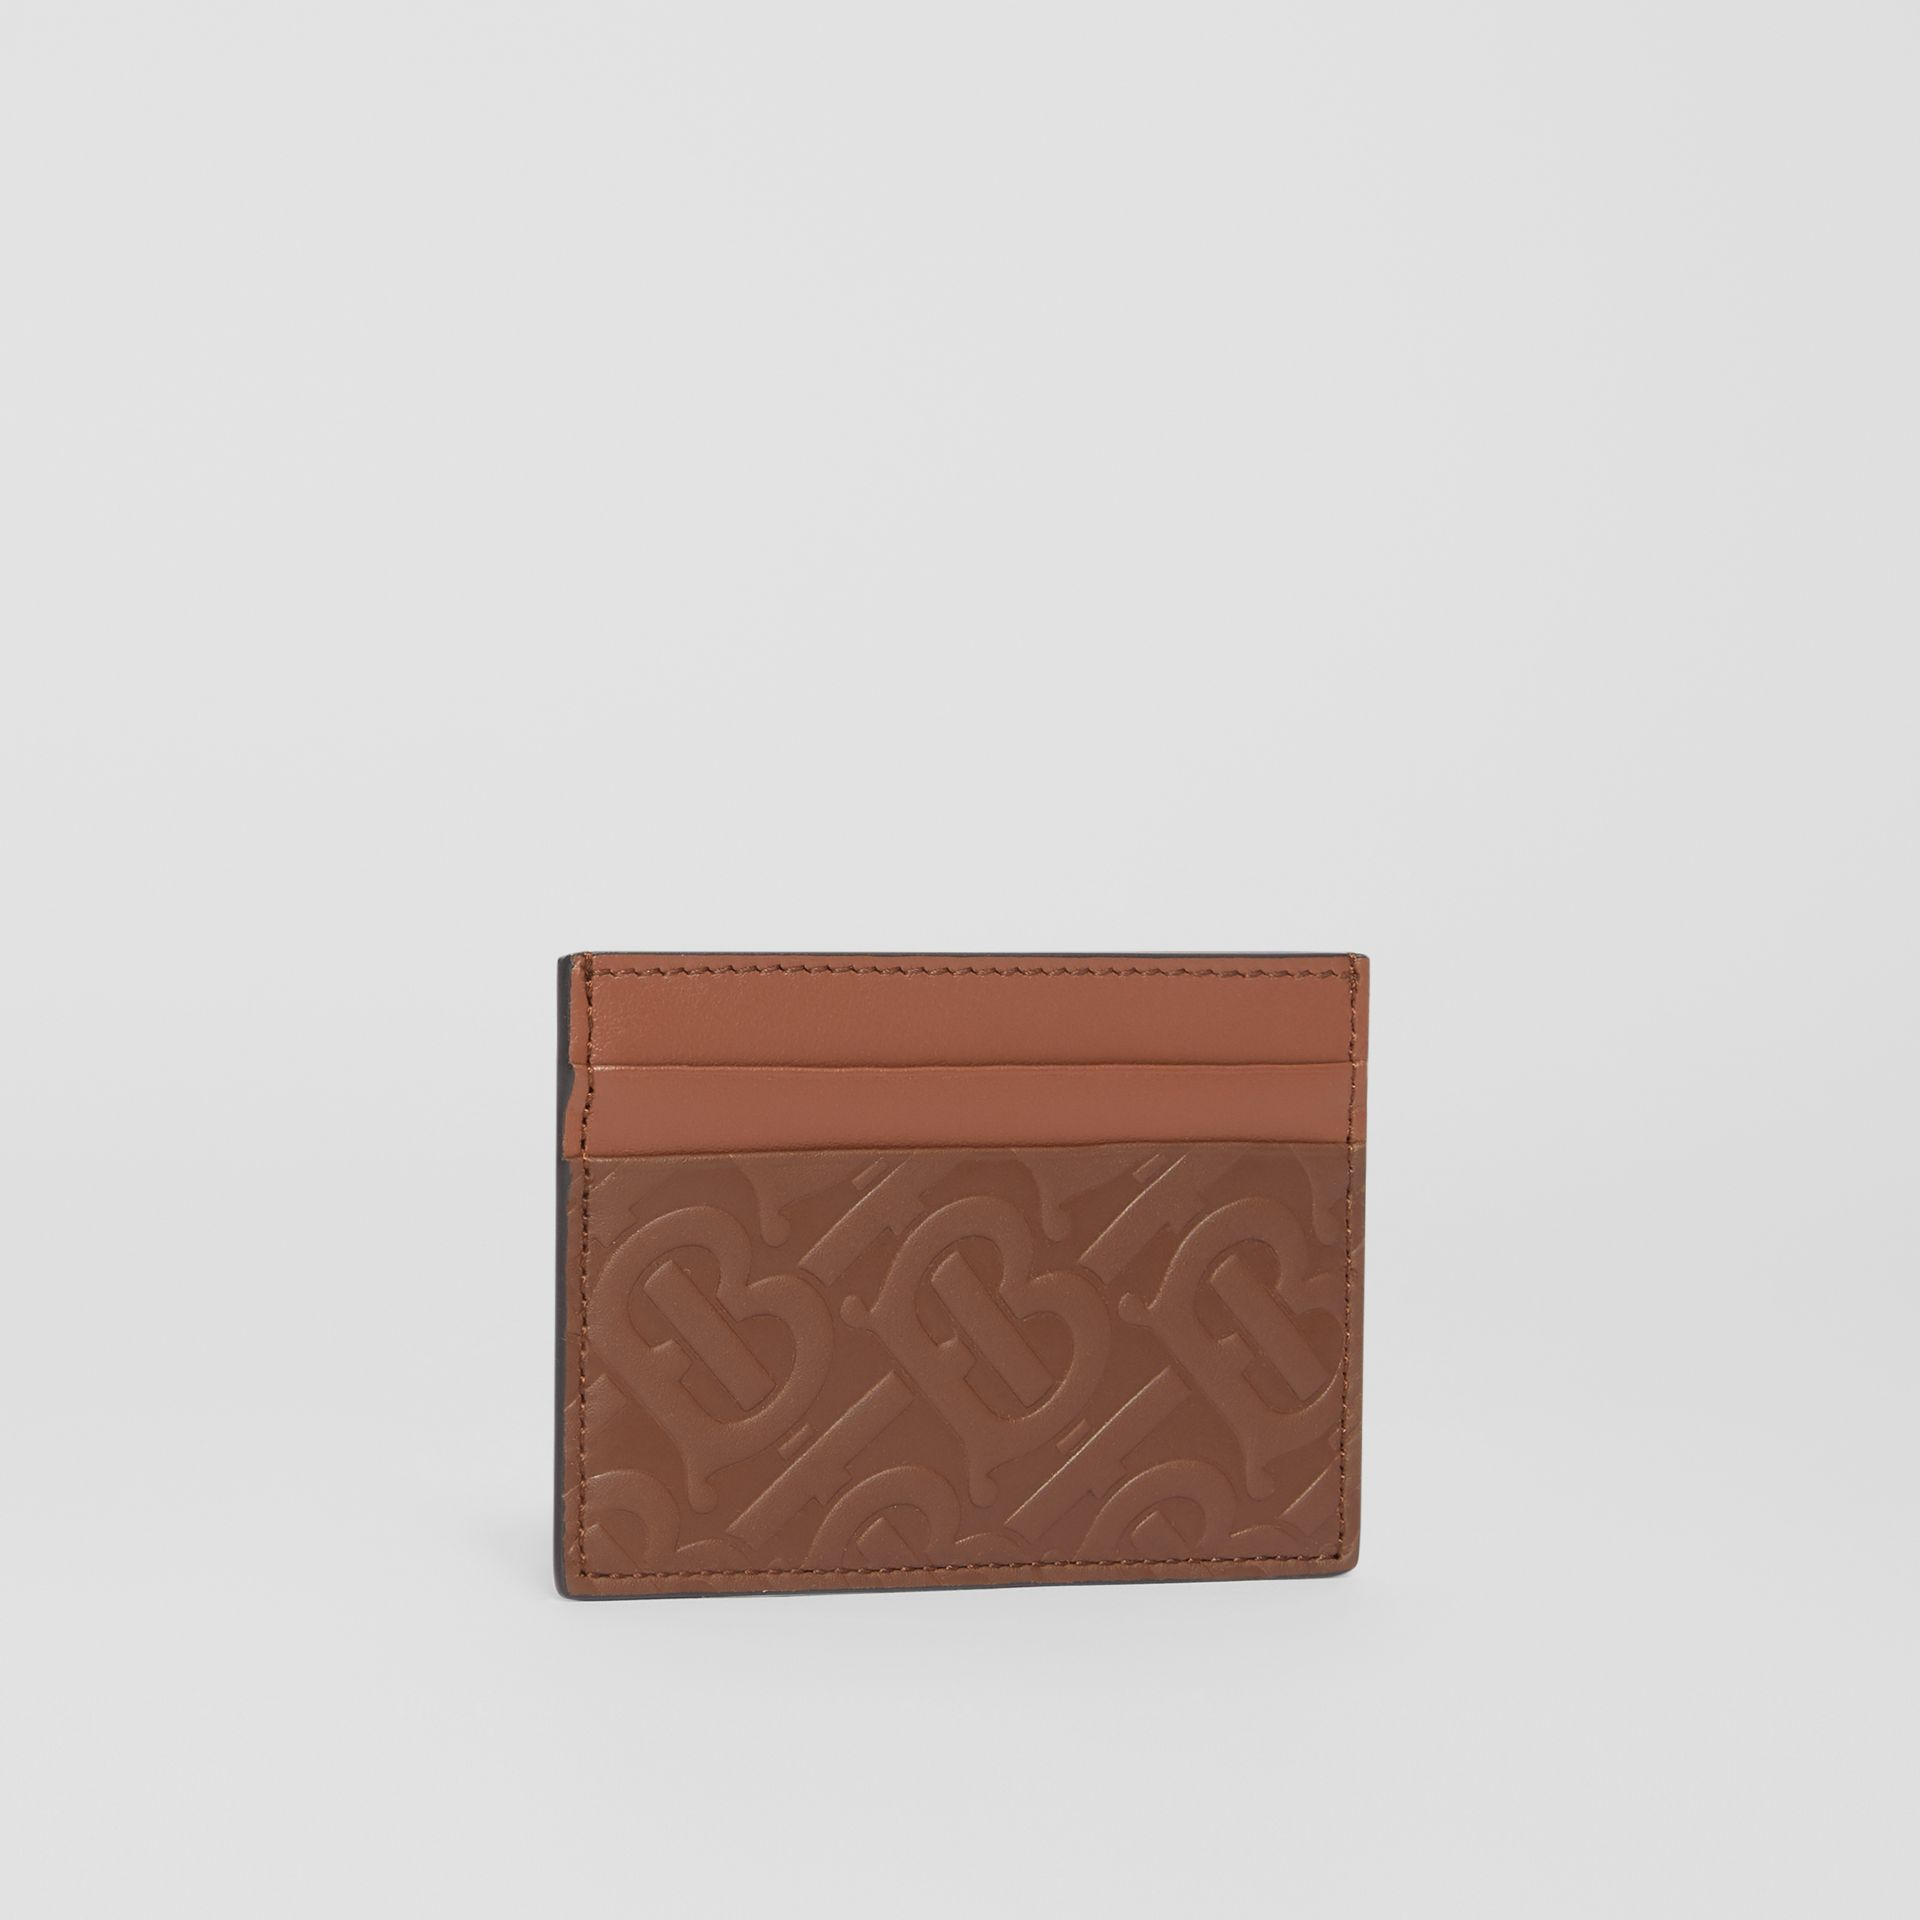 Monogram Leather Card Case in Dark Tan | Burberry - gallery image 3